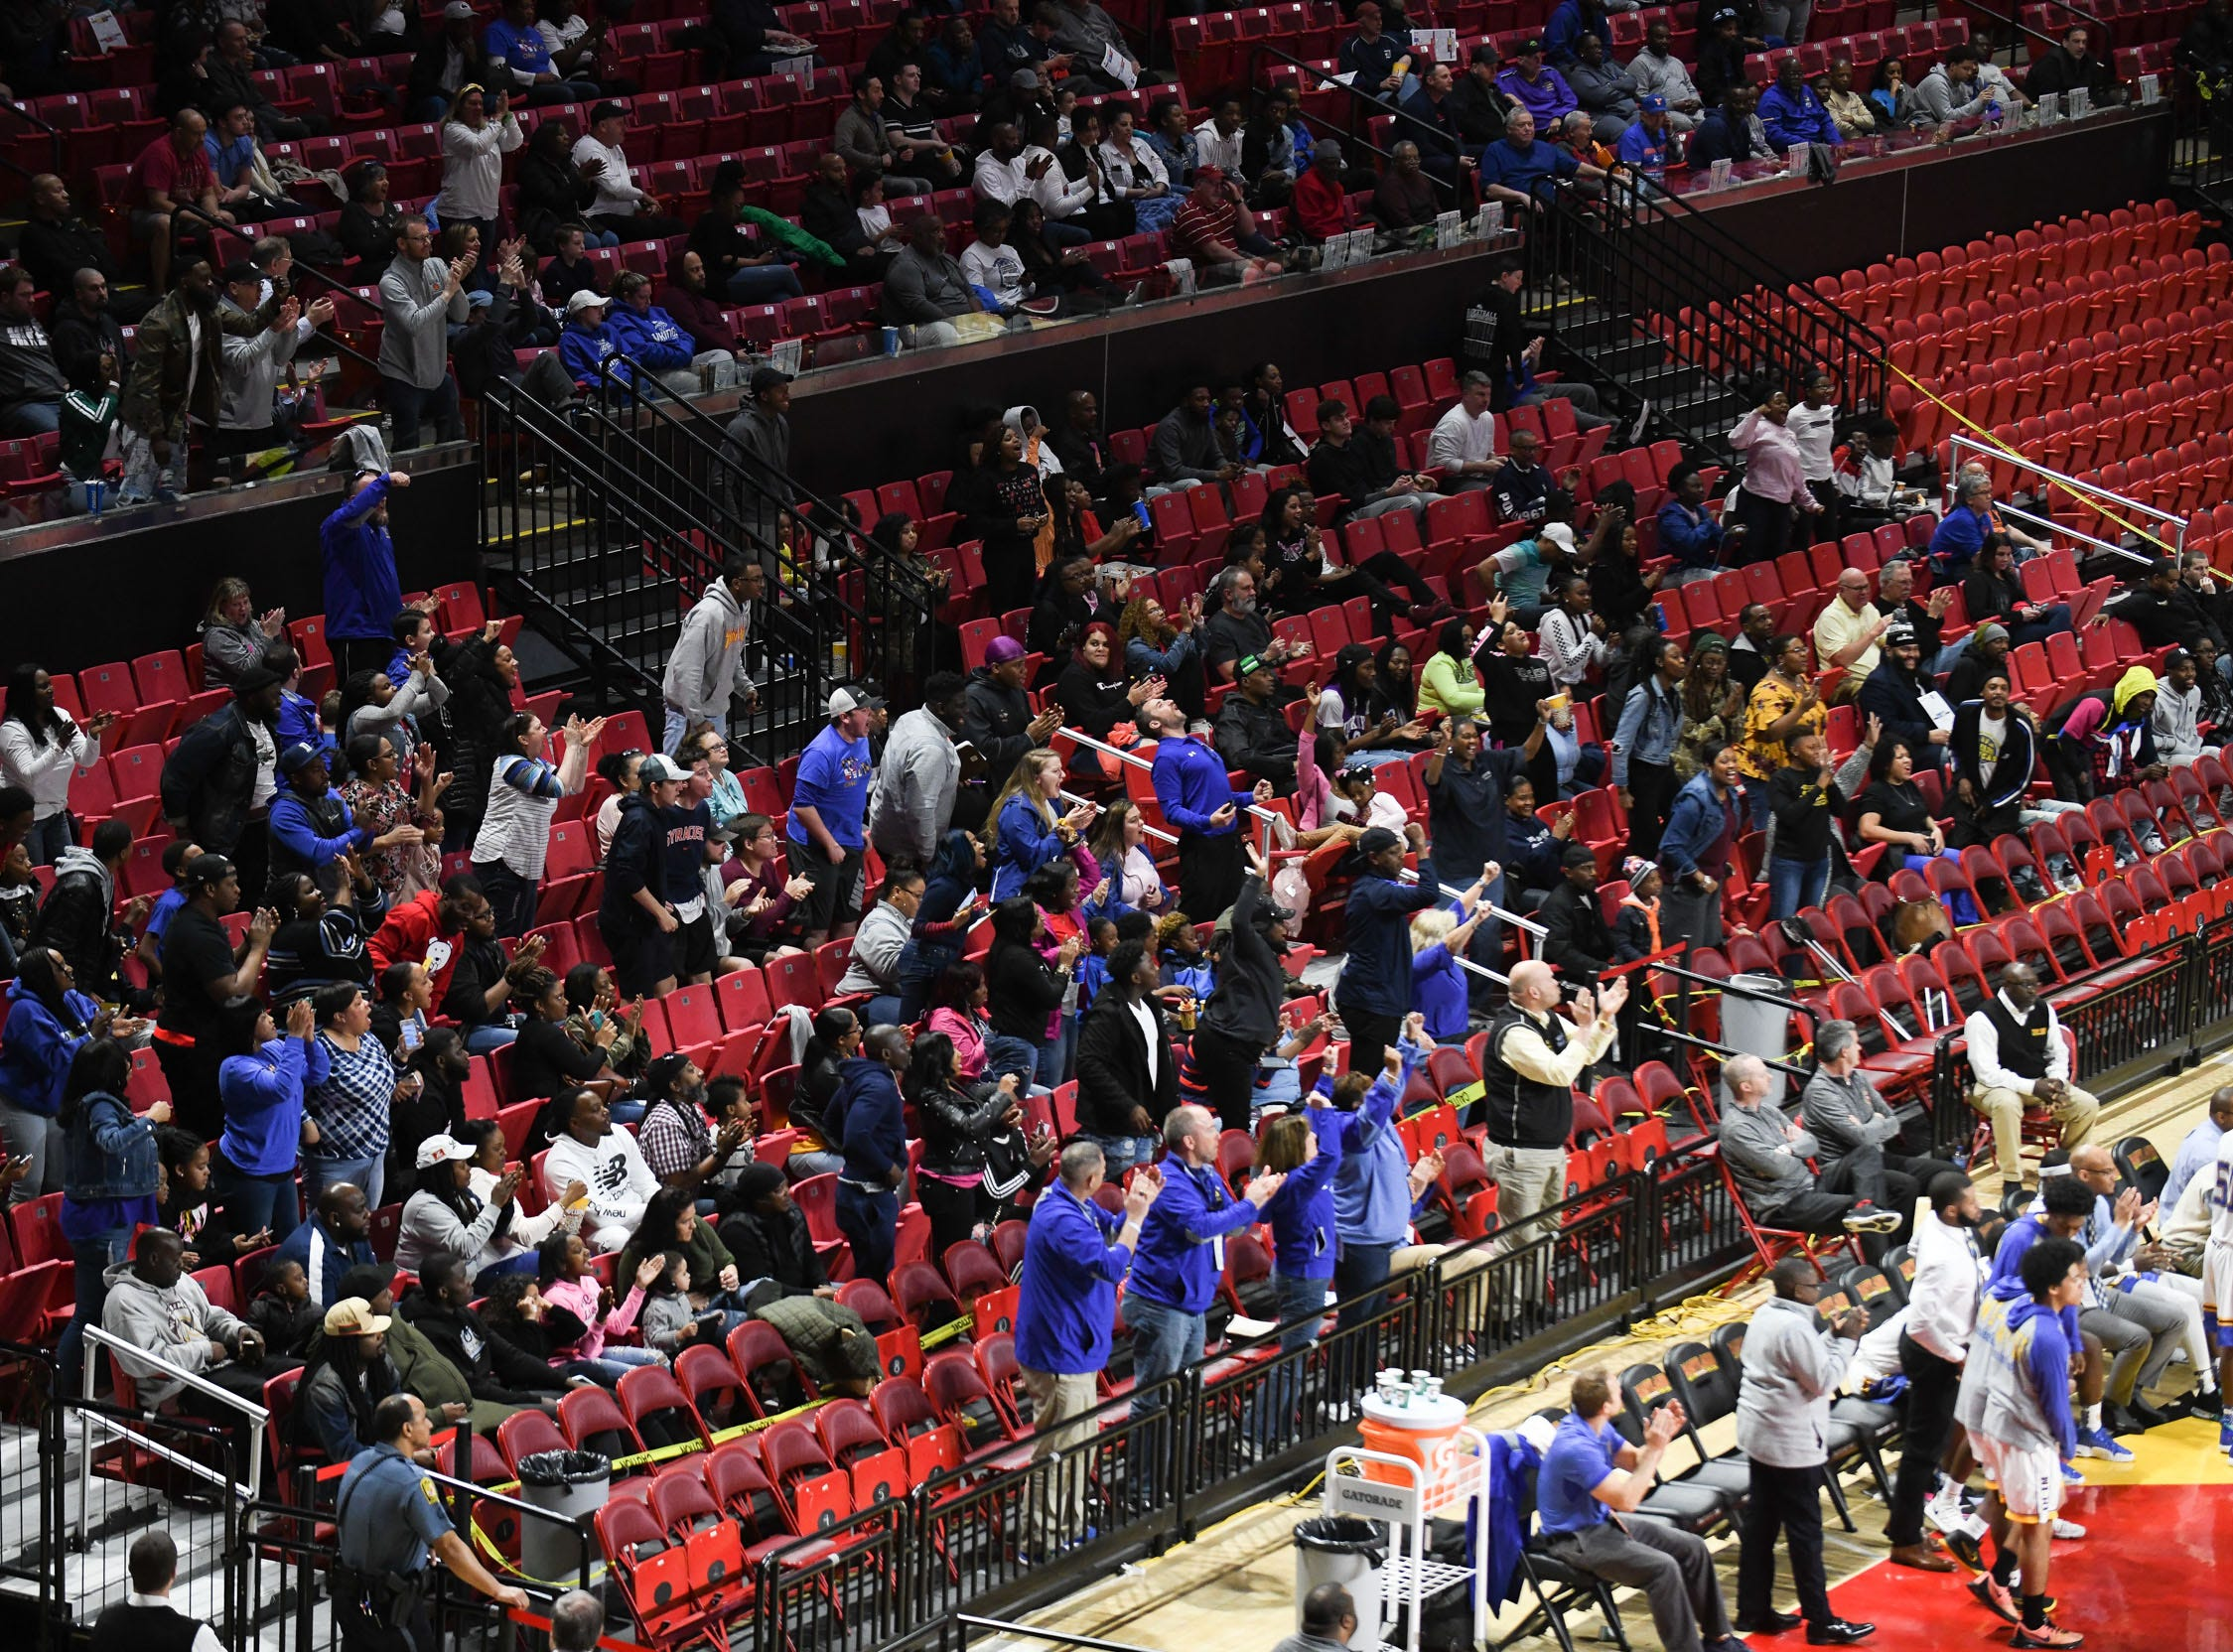 Wi-Hi's fans cheer during the game against Patterson High School during the MPSSA 2A boys state championship on Saturday, March 16, 2019 at The Xfinity Center in College Park, Md.